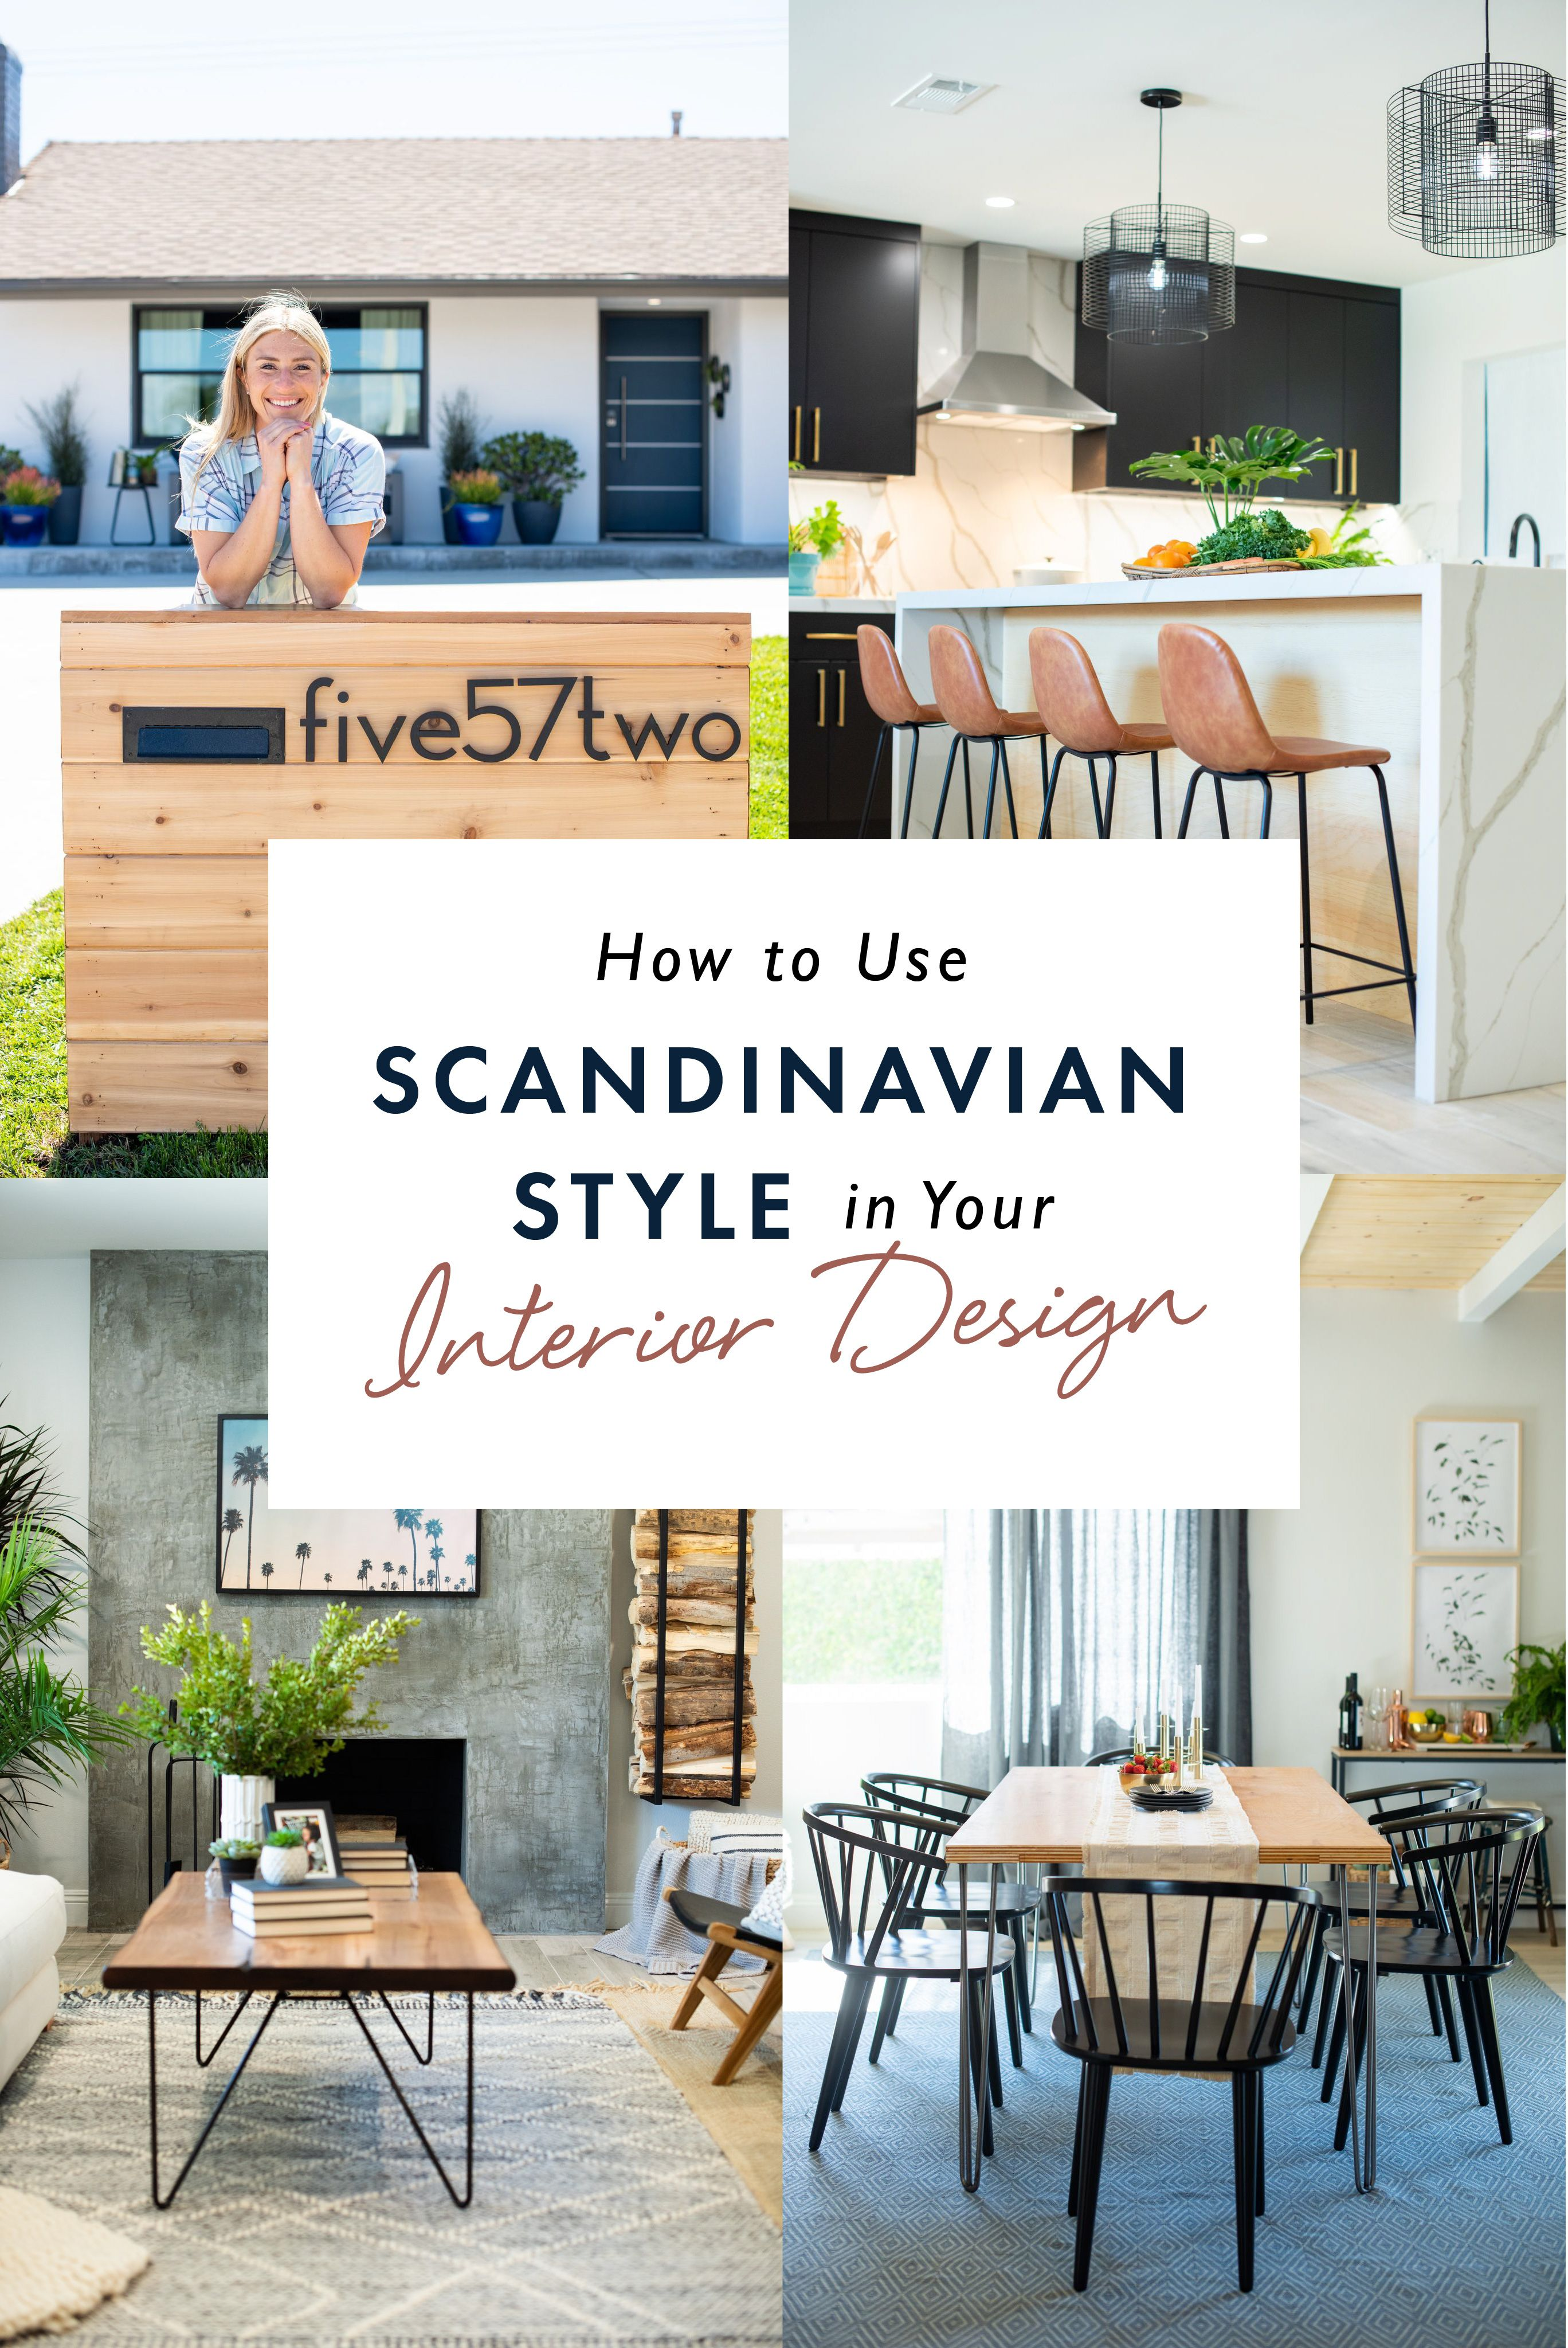 How To Use Scandinavian Style In Your Interior Design In 2020 Scandinavian Style Interior Interior Design Scandi Furniture